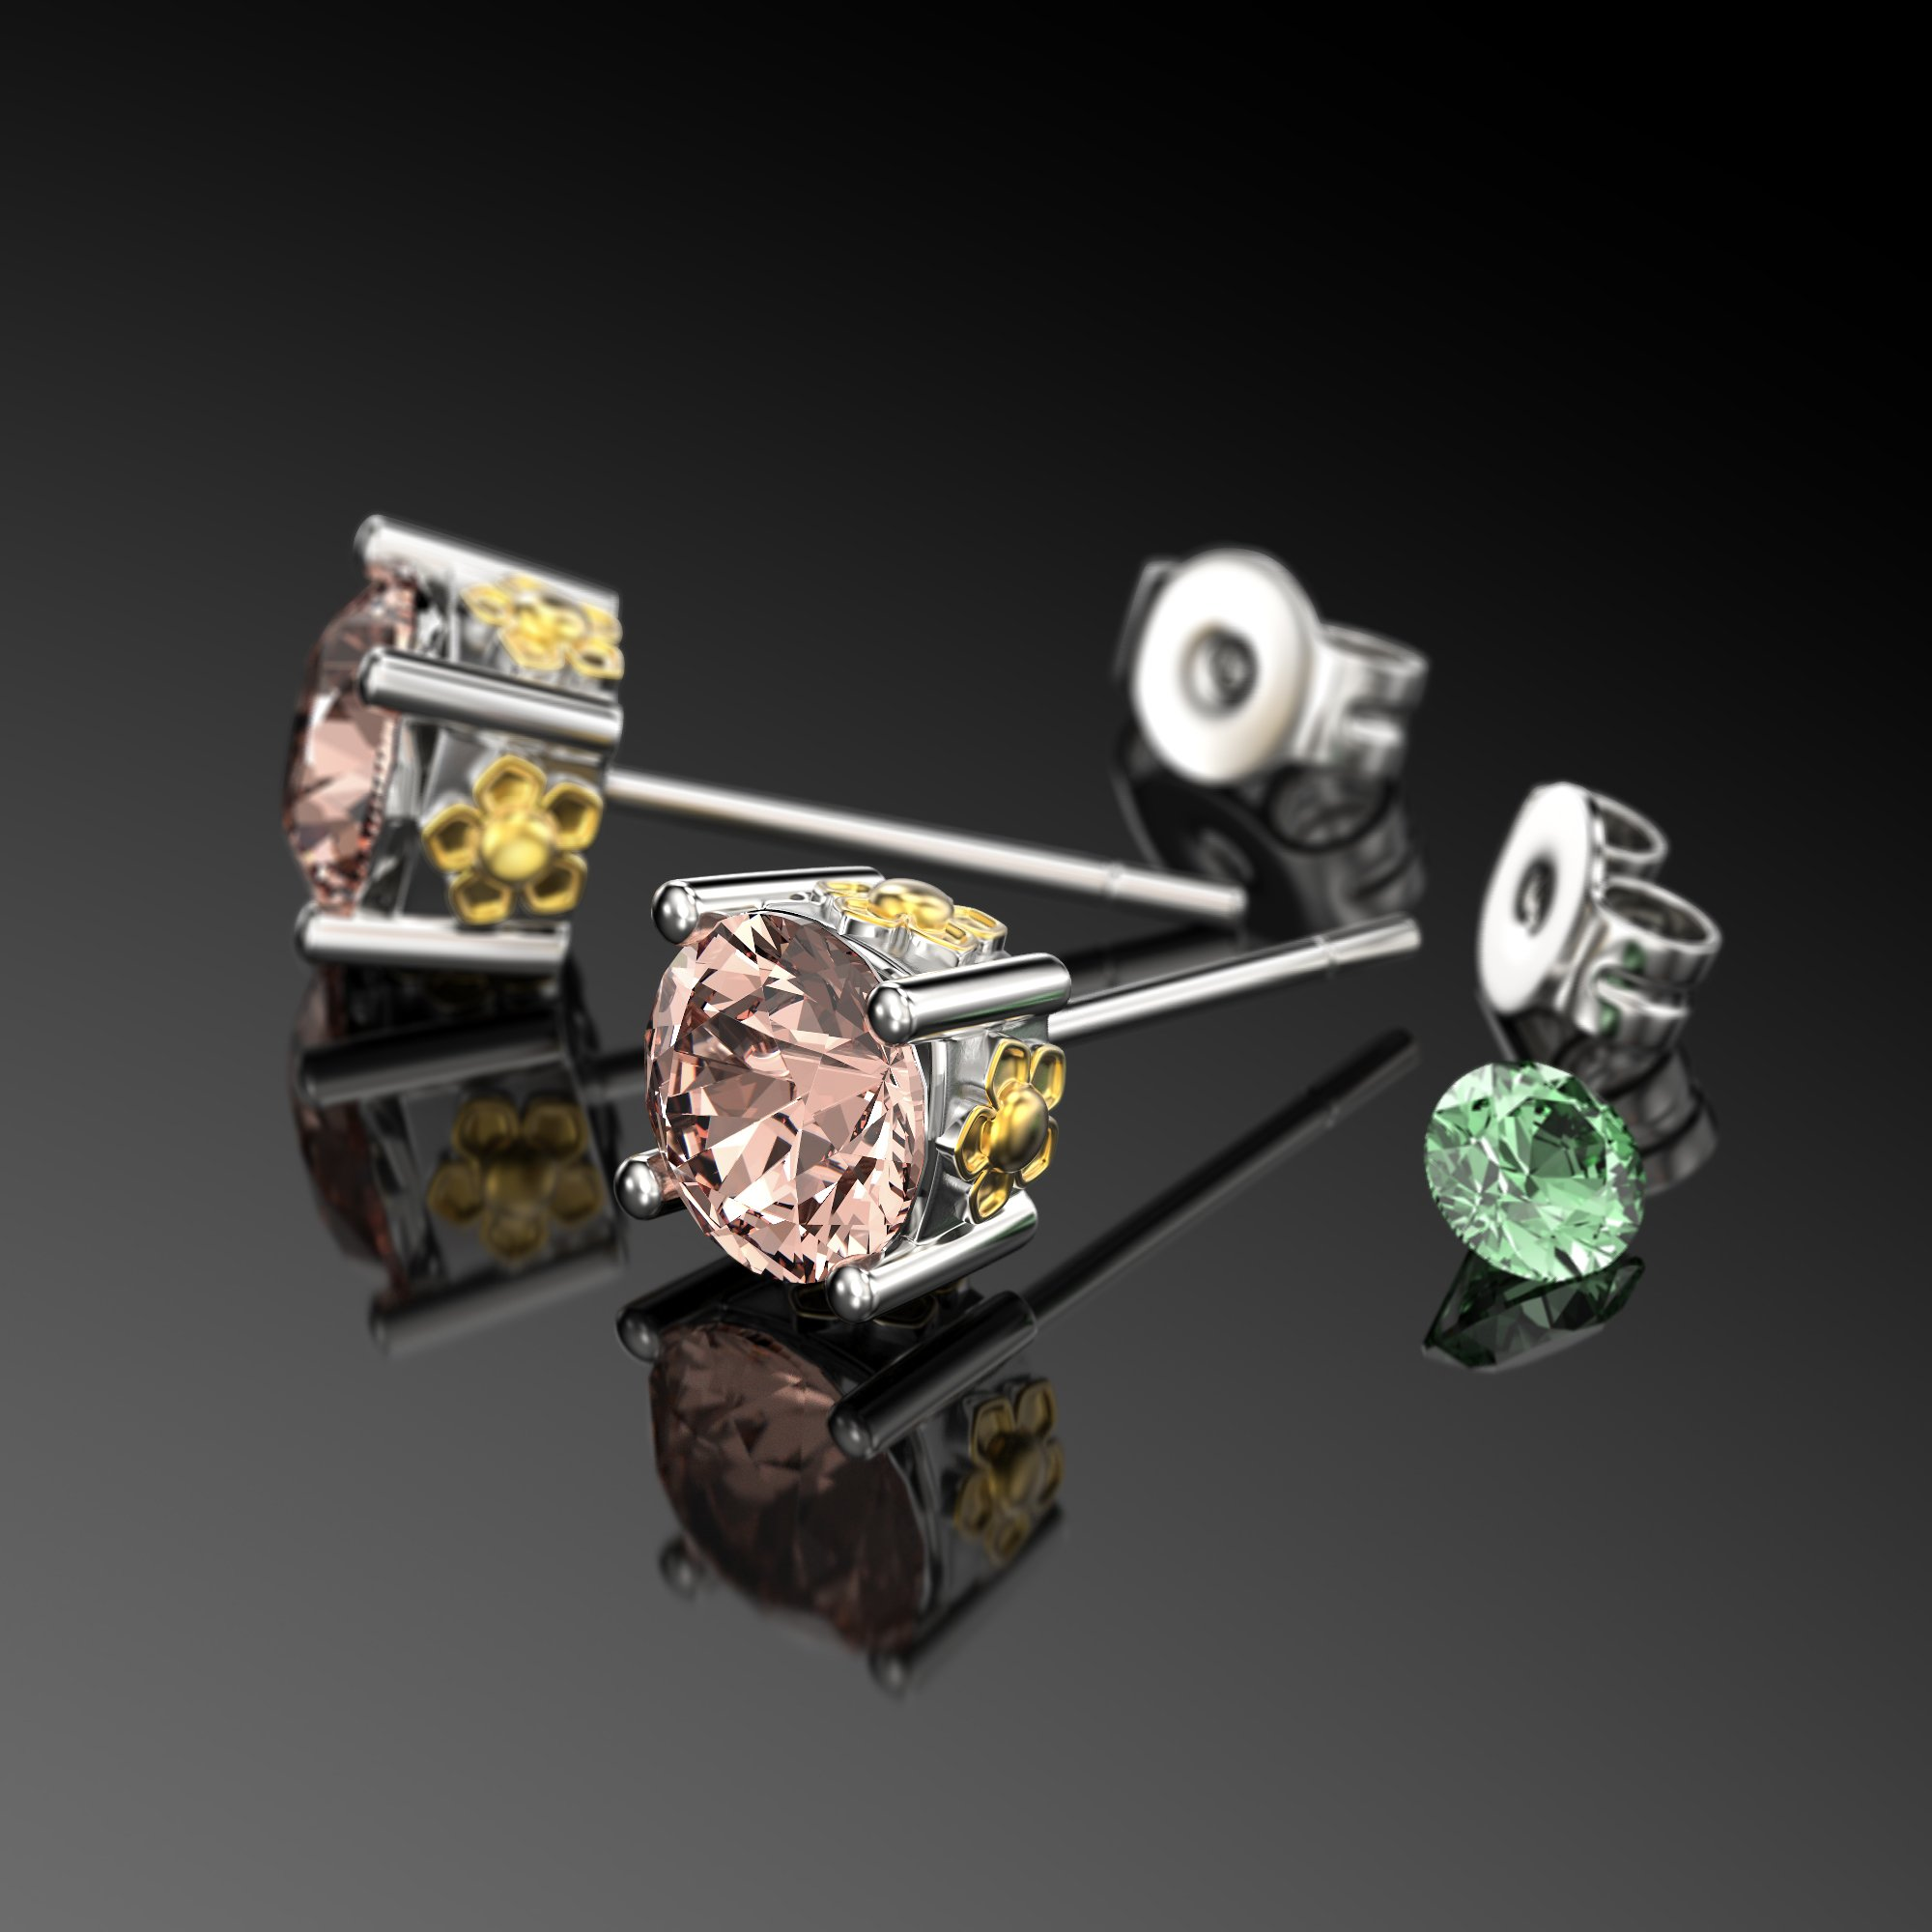 VAN LECONY White Gold and Gold Plated Flower Stud Earrings,Light Peach by VAN LECONY (Image #2)